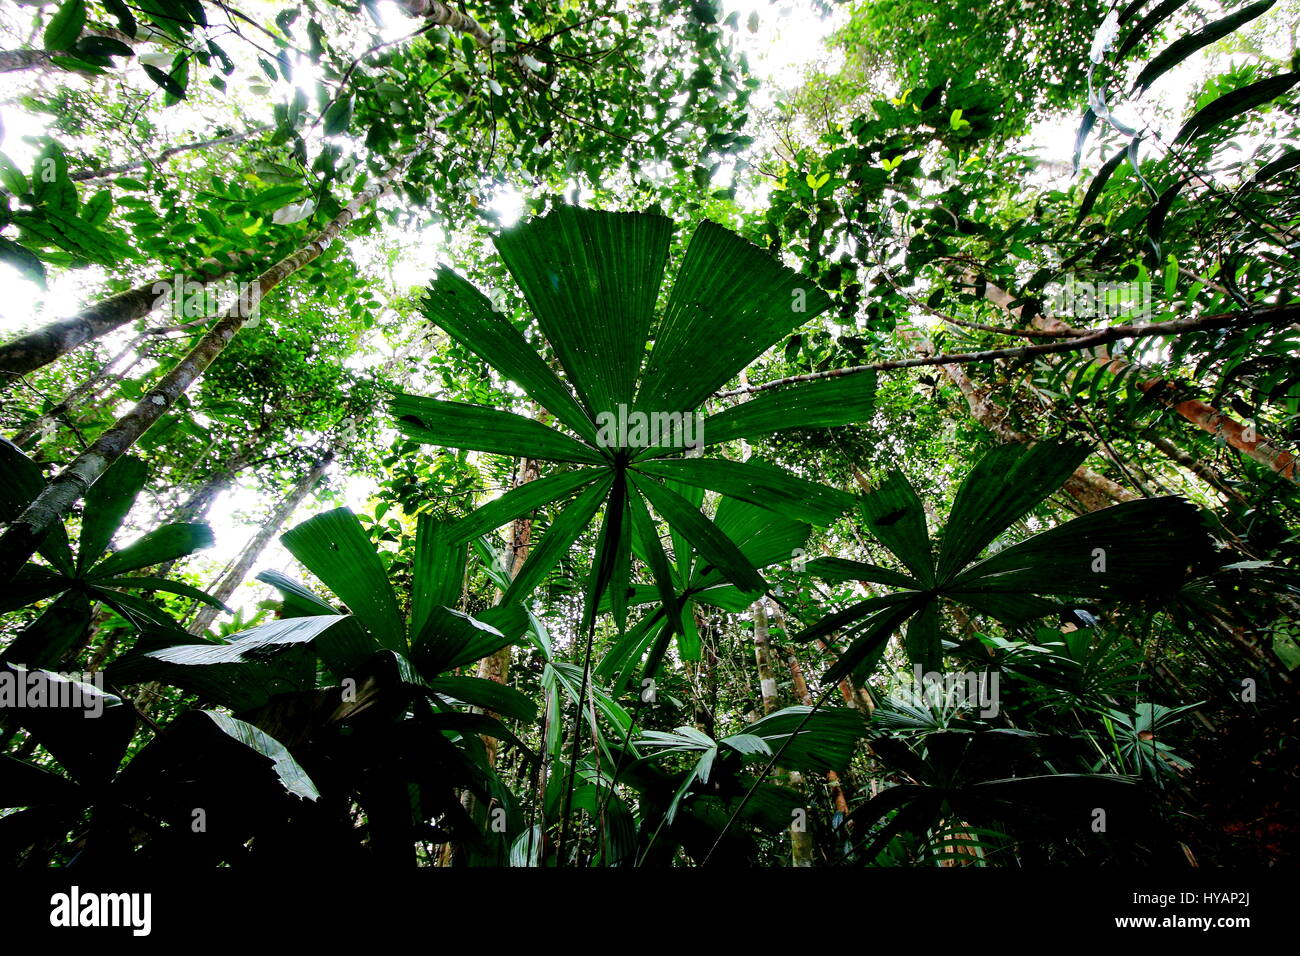 Worm's eye view of fan palms in a tropical jungle - Stock Image